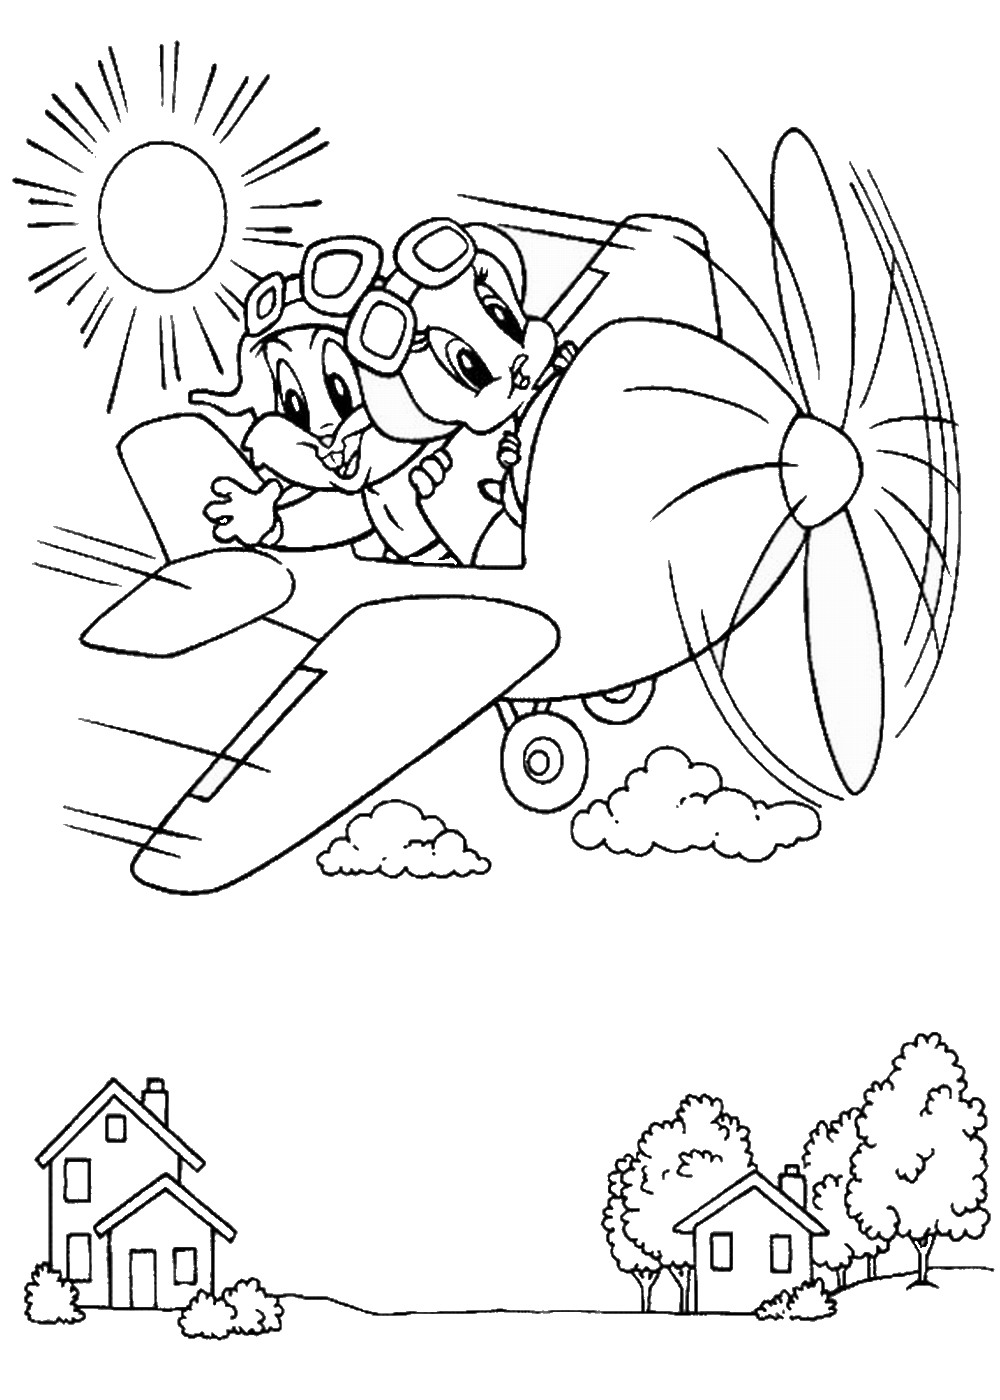 planes coloring pages u2013 birthday printable